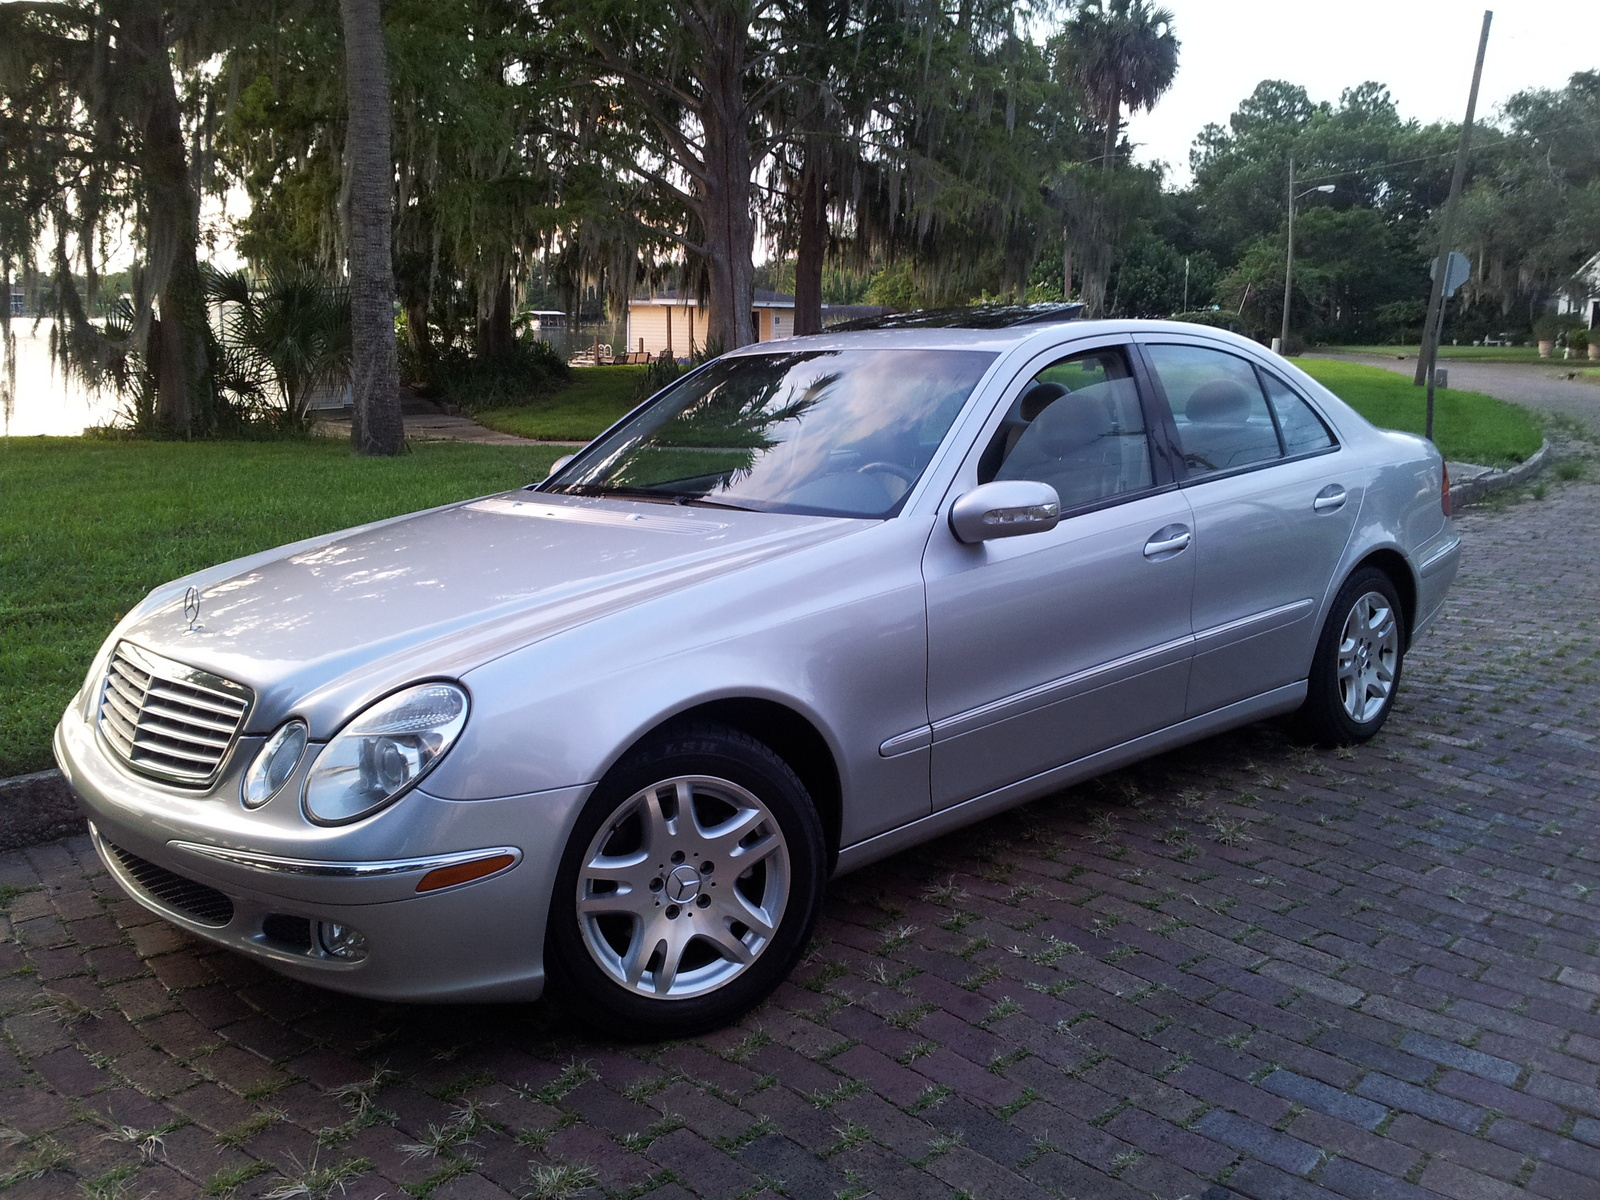 Suv mercedes 2004 2018 dodge reviews for 2004 mercedes benz e320 review